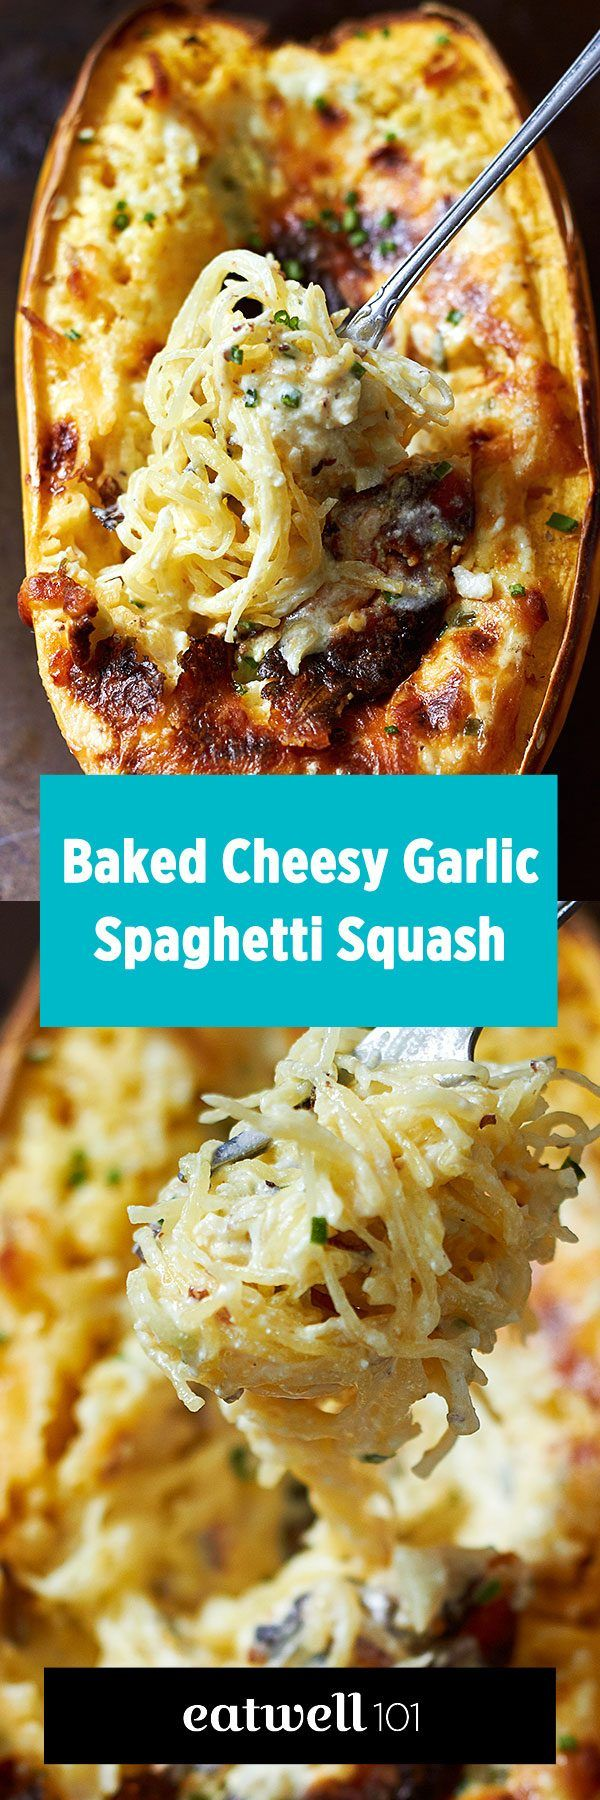 Baked Four Cheese Garlic Spaghetti Squash Spaghetti Squash Recipe – - Stuffed with a creamy garlic and 4-cheese sauce – LOW CARB and so COMFORTING! - by